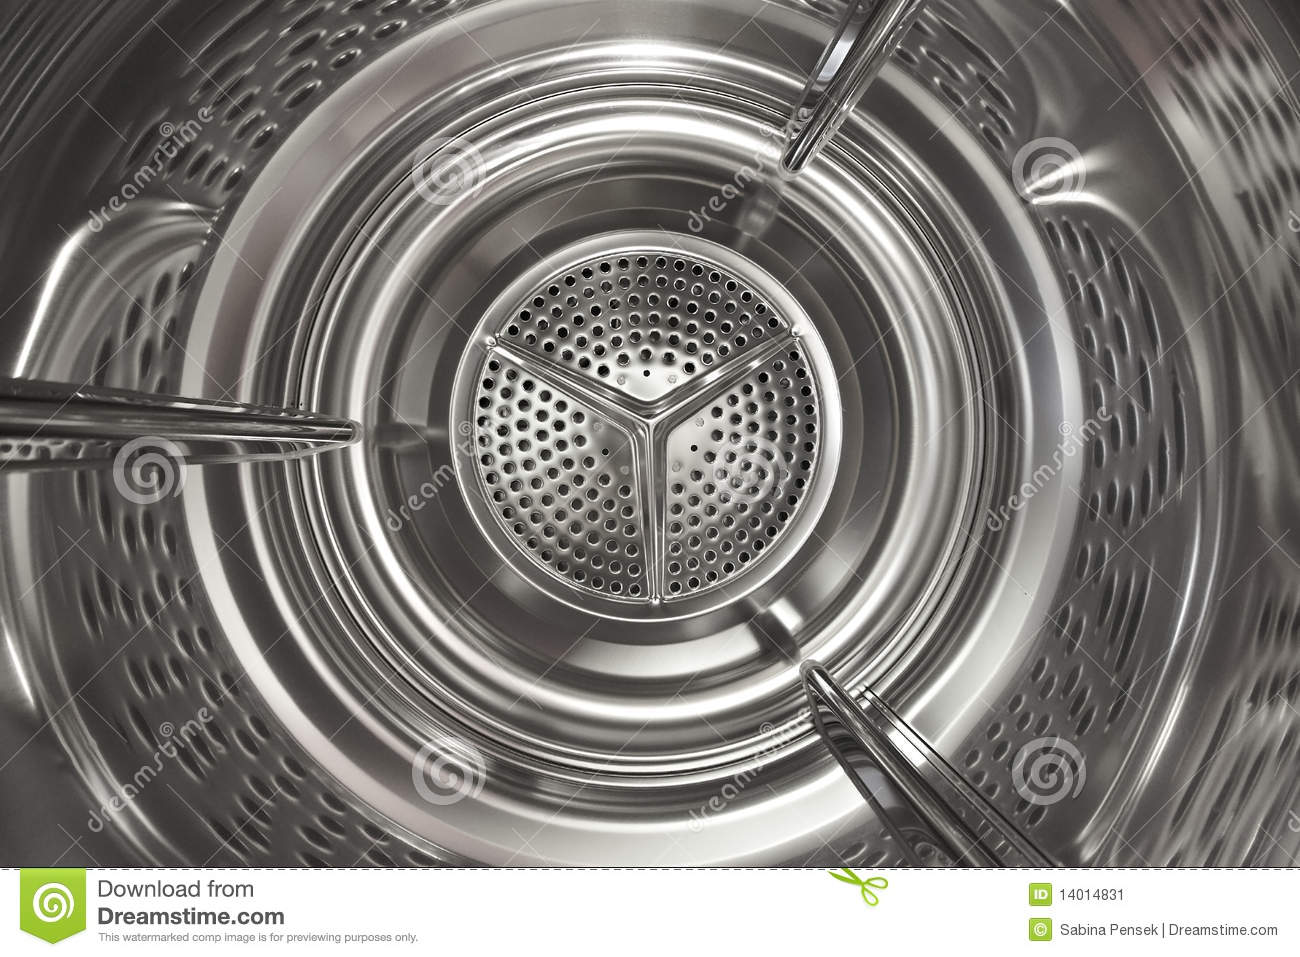 Washing Machine Steel Drum Stock Image.